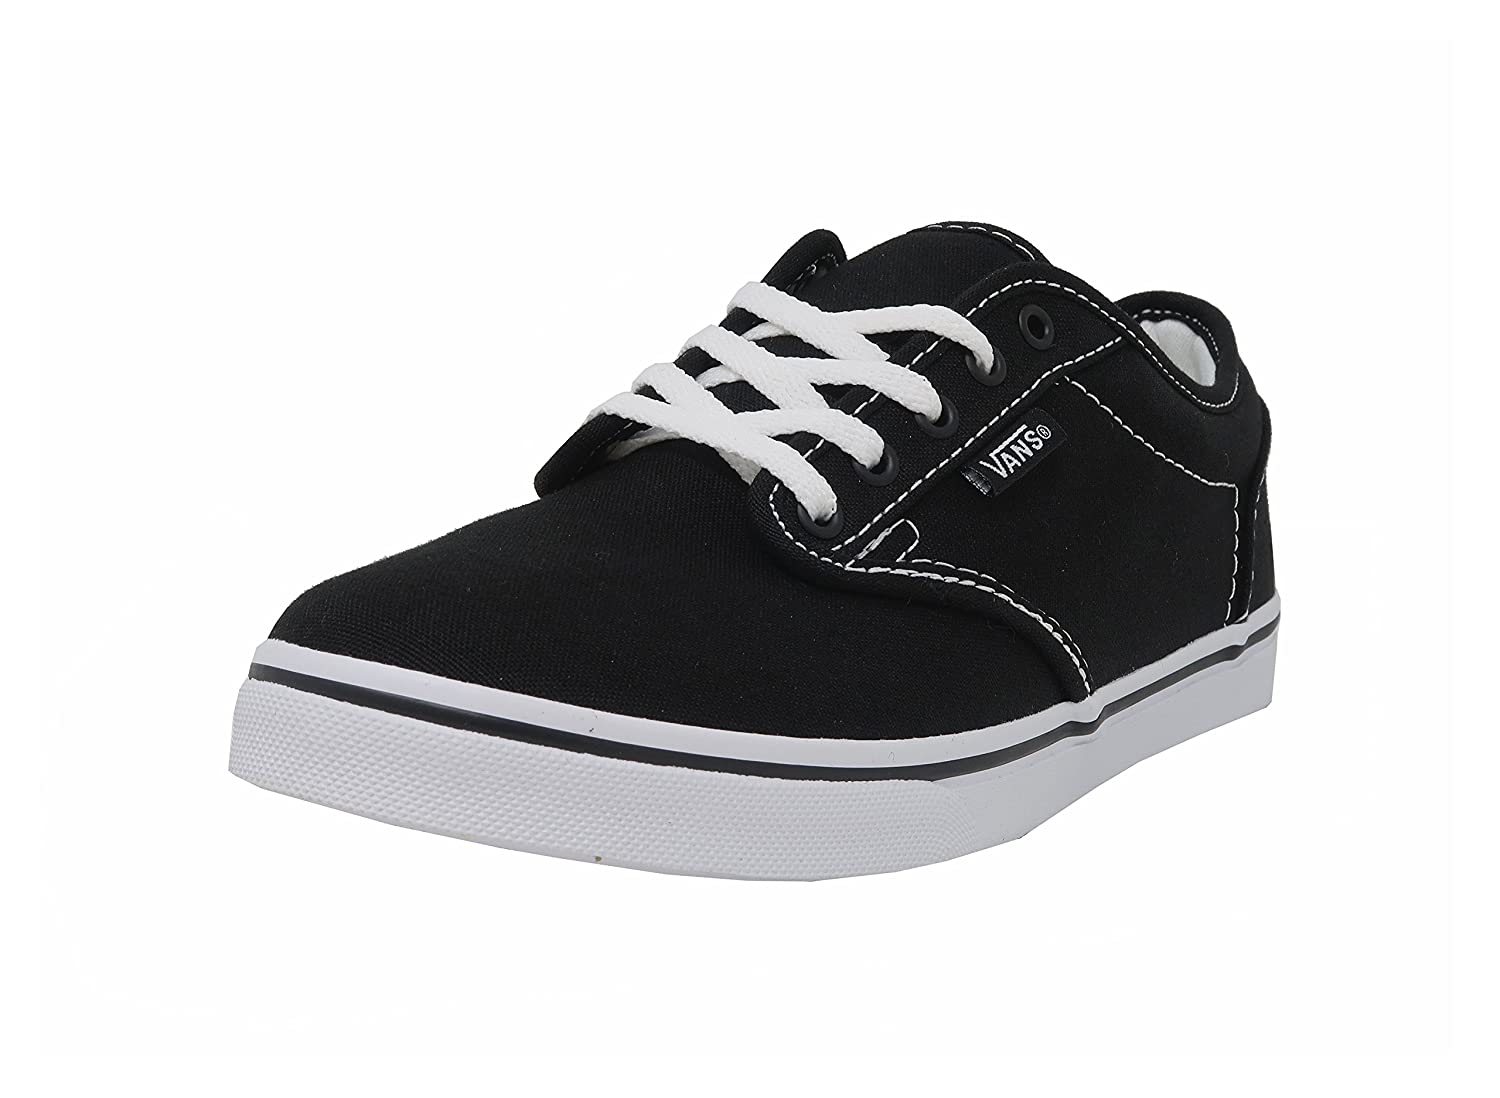 Vans Women's Atwood Low Fashion Sneakers Shoes B01N12D9SI 6 B(M) US|Black/White